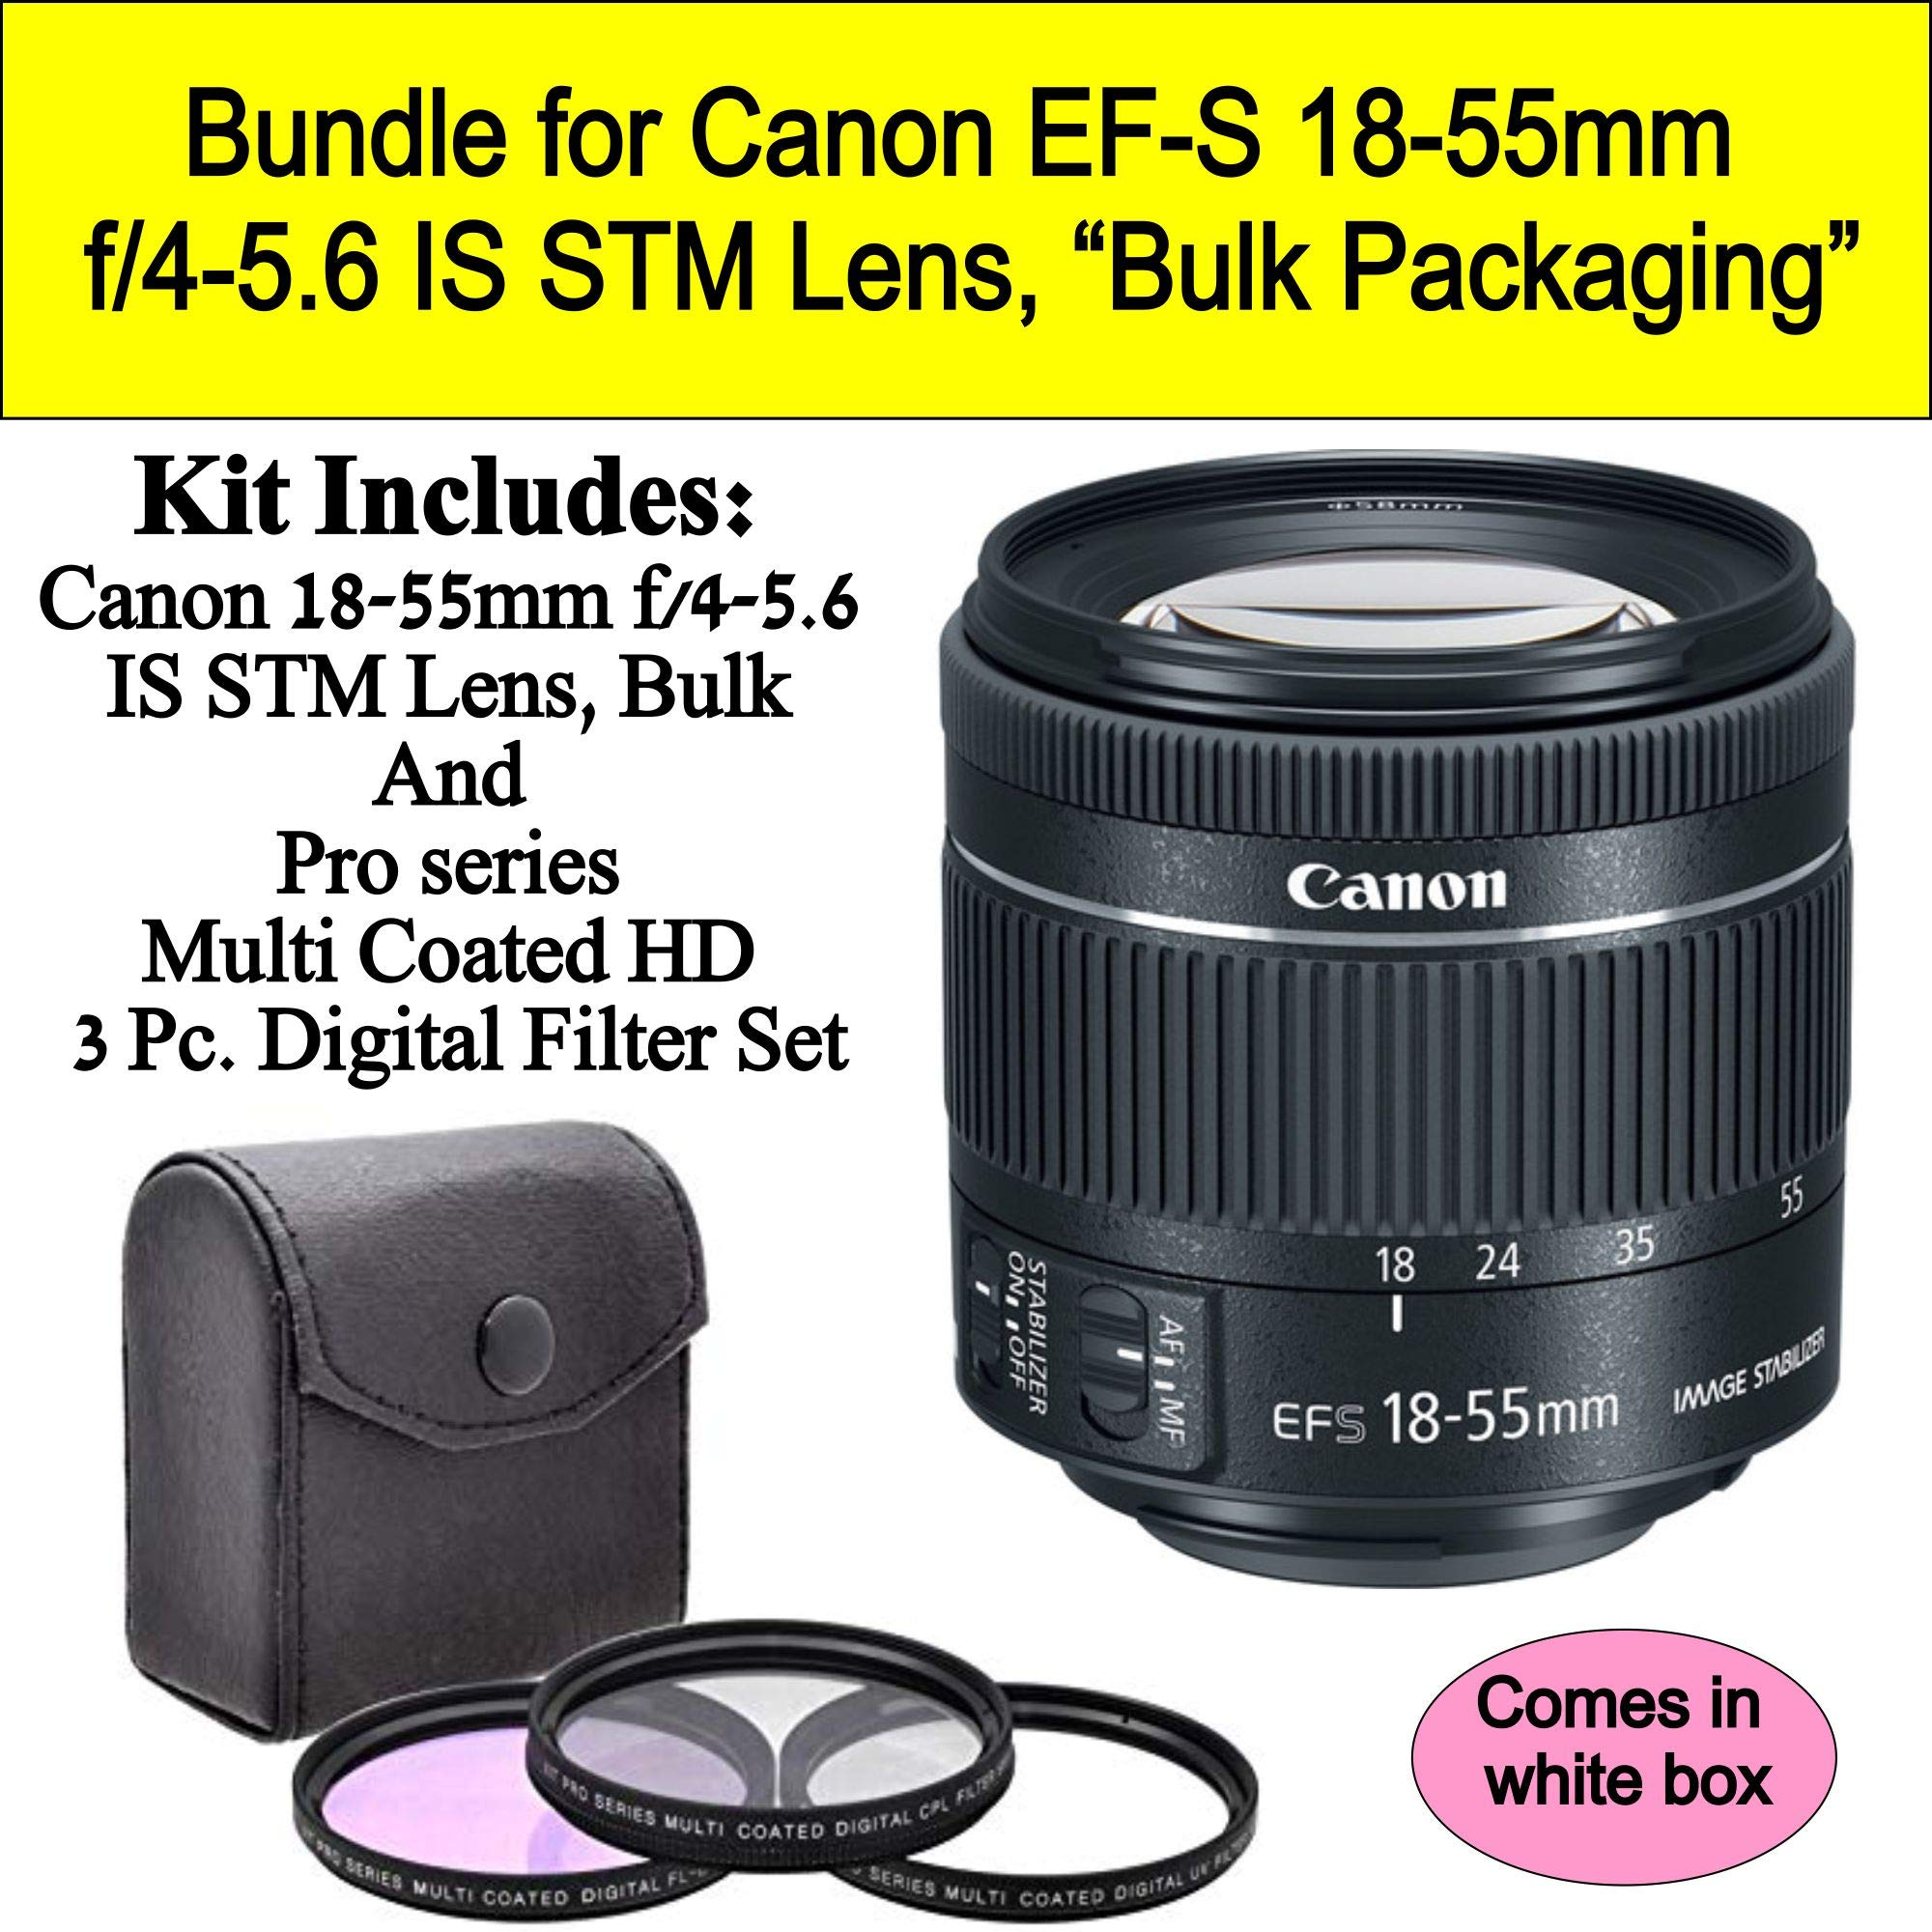 Bundle for Canon EF-S 18-55mm f/4-5.6 is STM Lens (White-Box) by Canon/clear